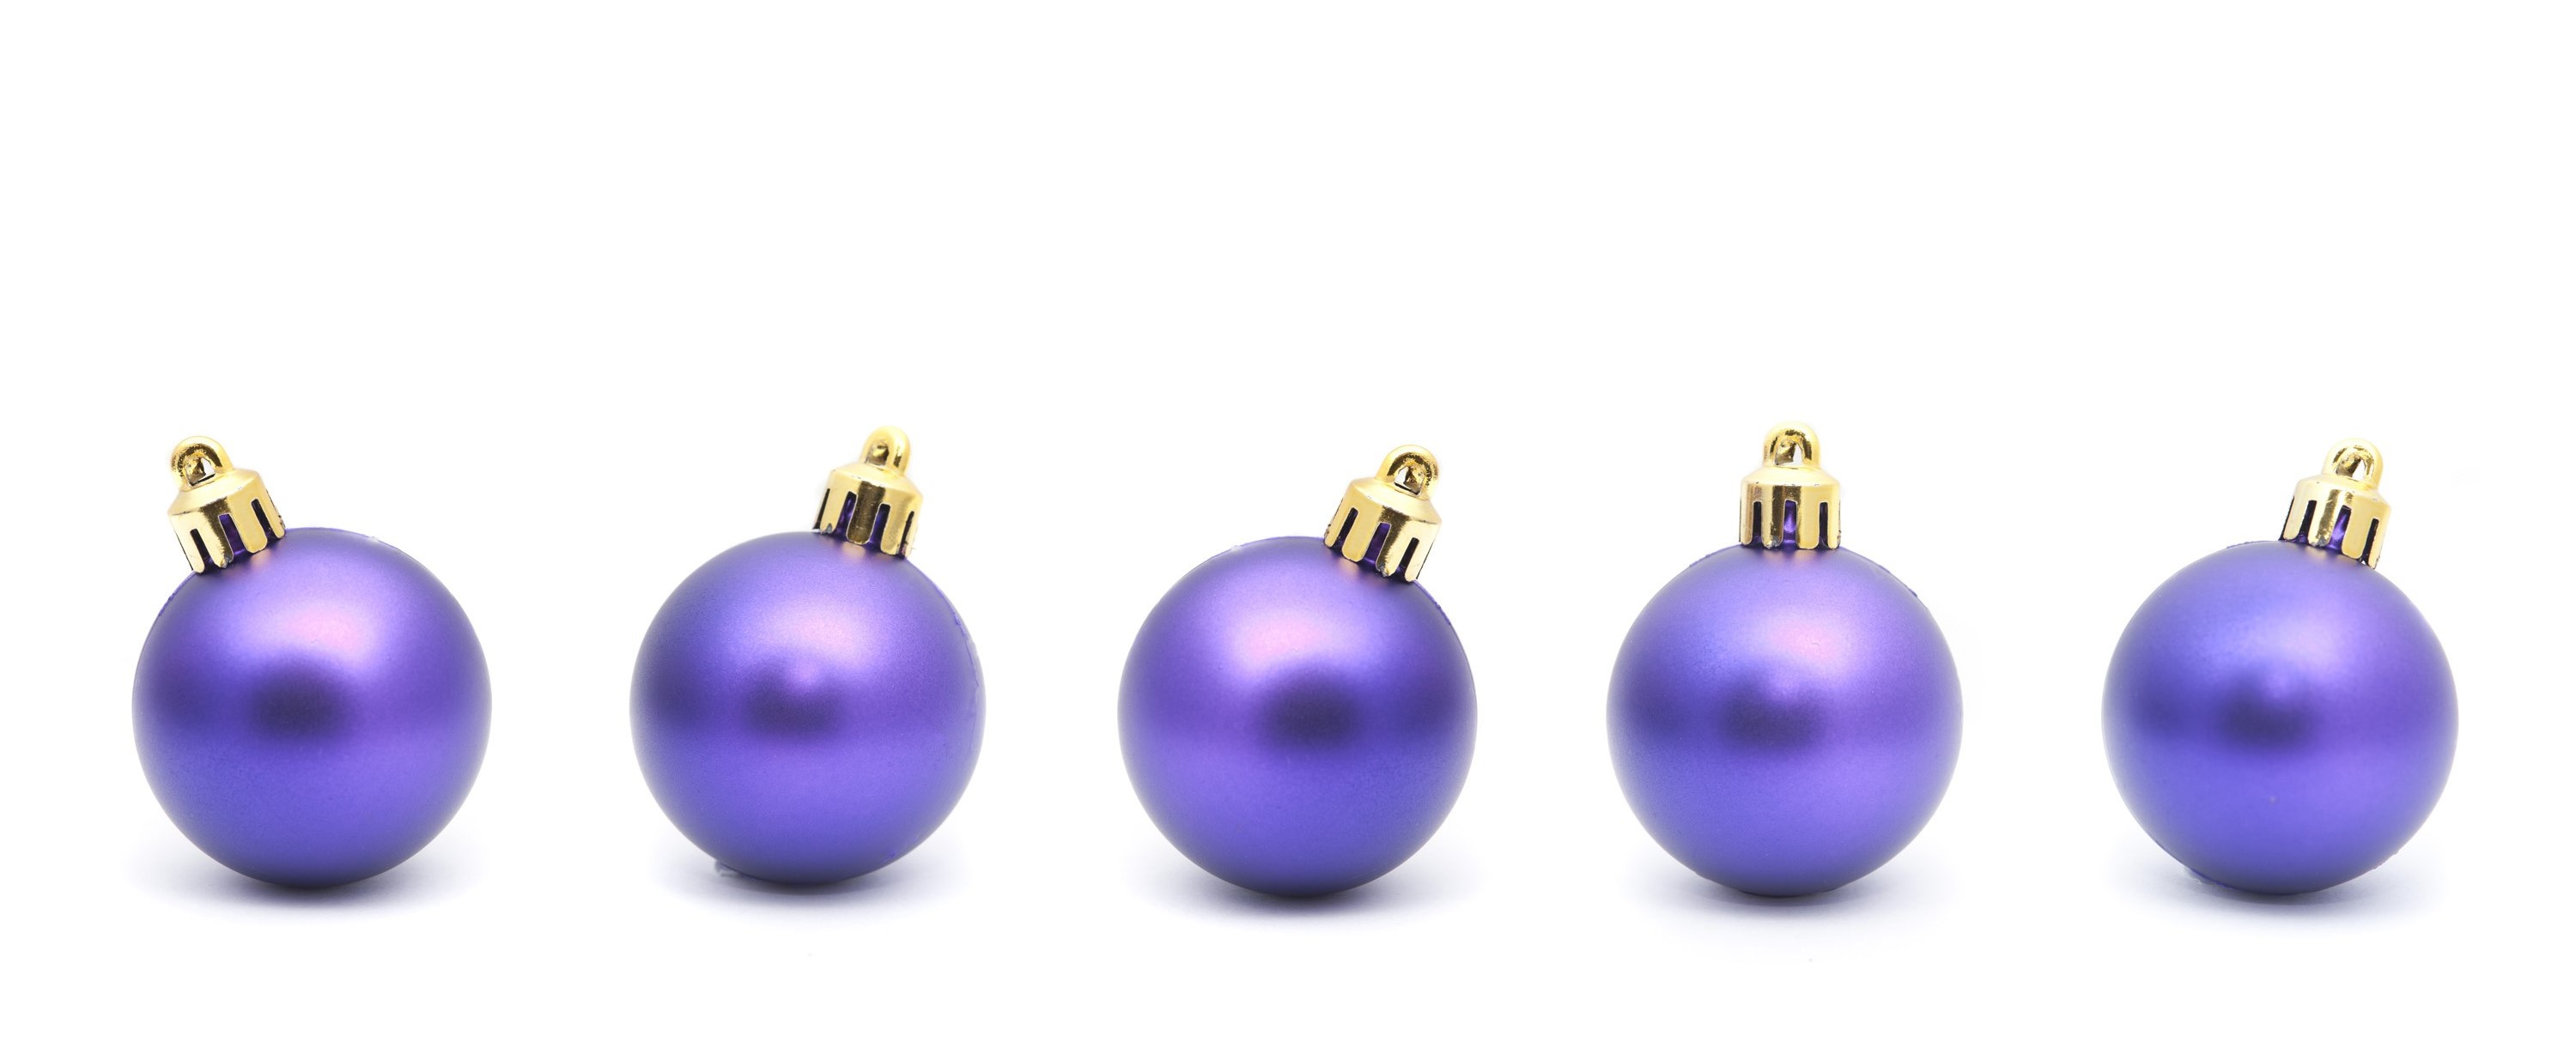 Purple Christmas bauble border with a row of five balls with natural shadow on a white background